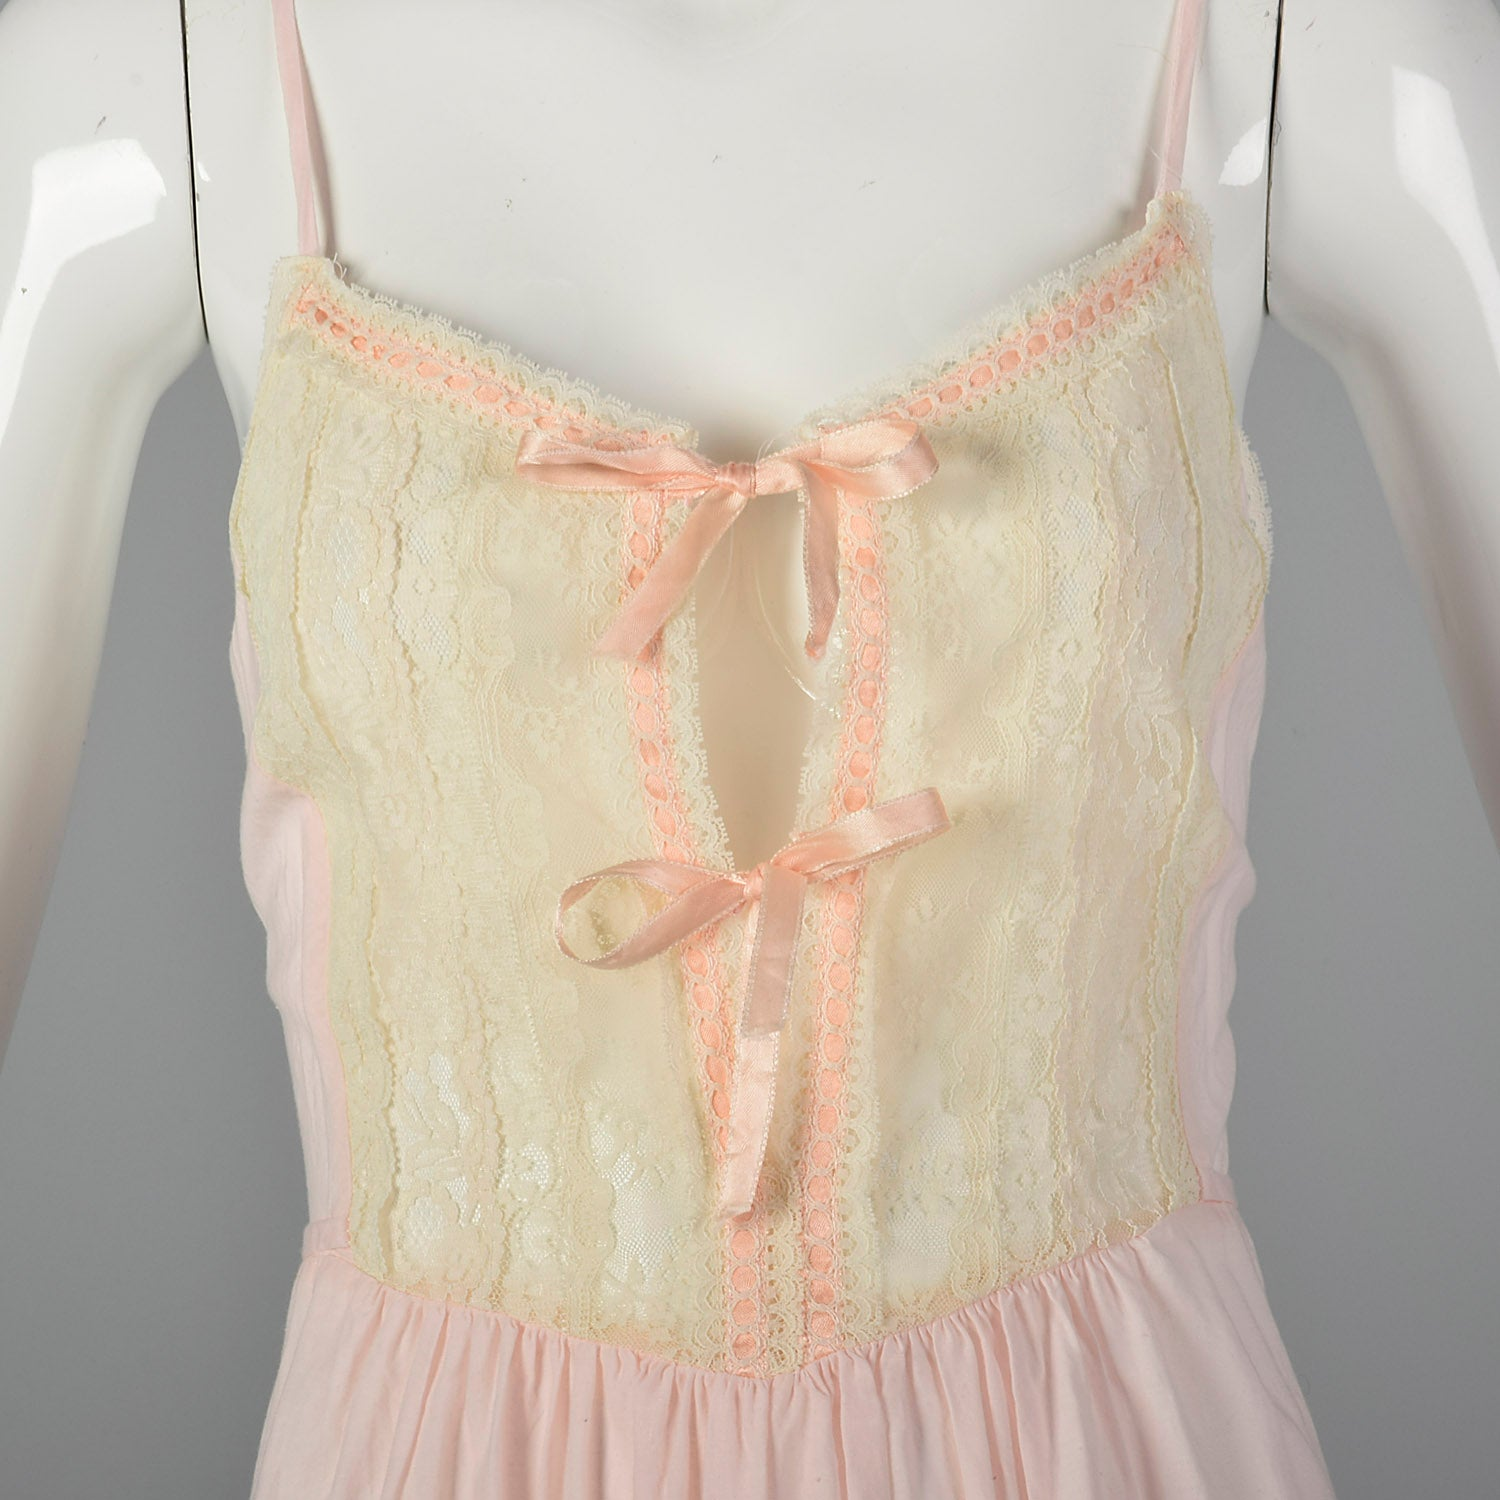 1970s Christian Dior Pink Nightgown